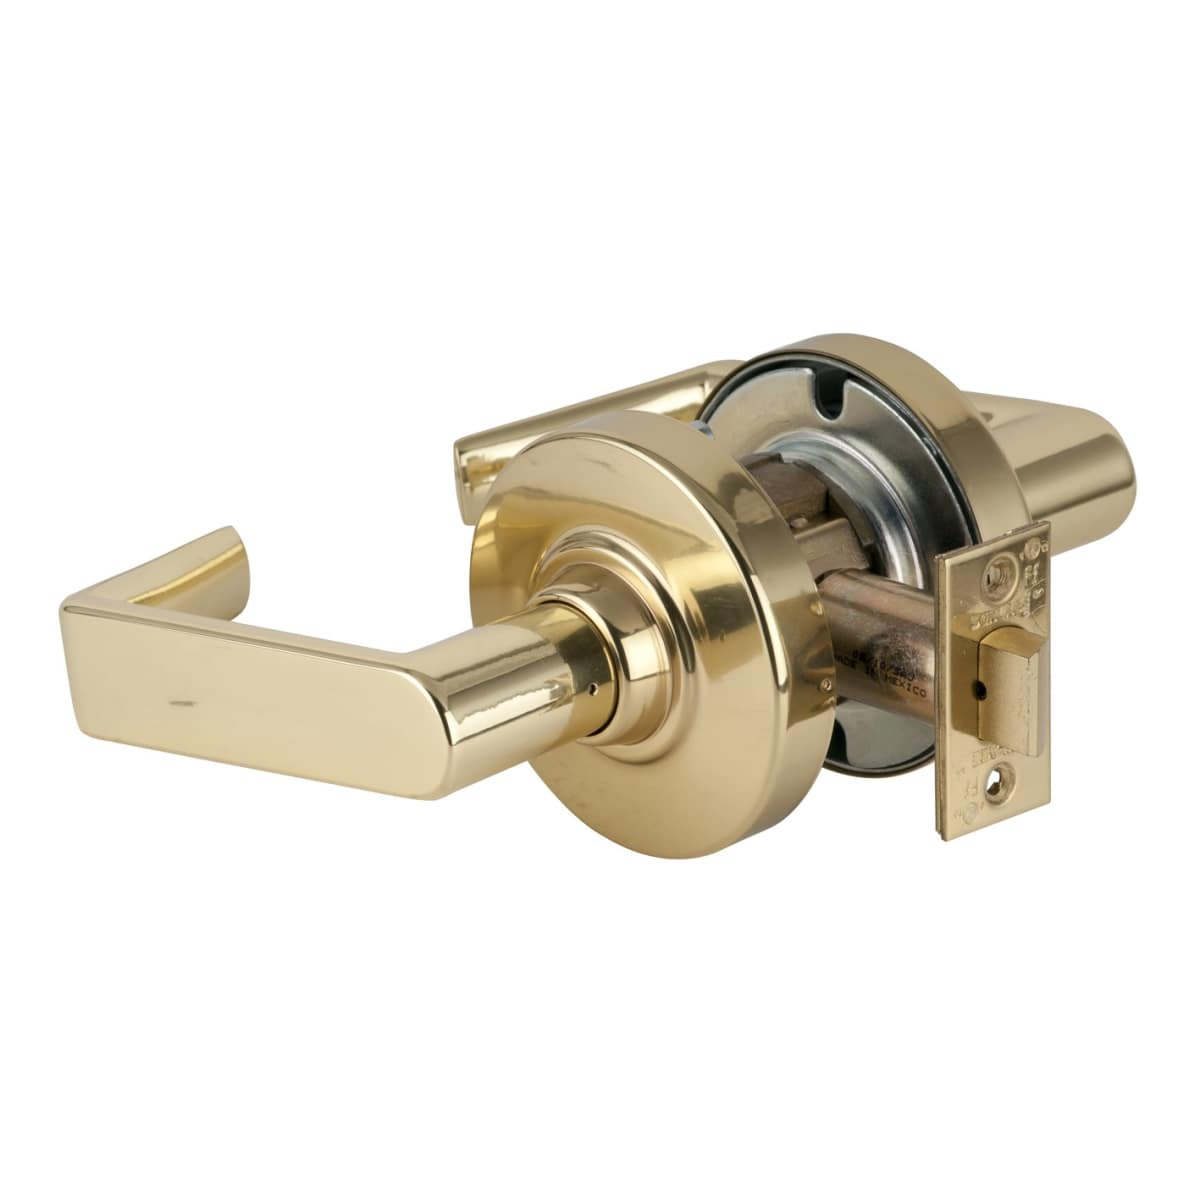 Schlage commercial ND10RHO613 ND Series Grade 1 Cylindrical Lock Passage Function Oil Rubbed Bronze Finish Rhodes Lever Design